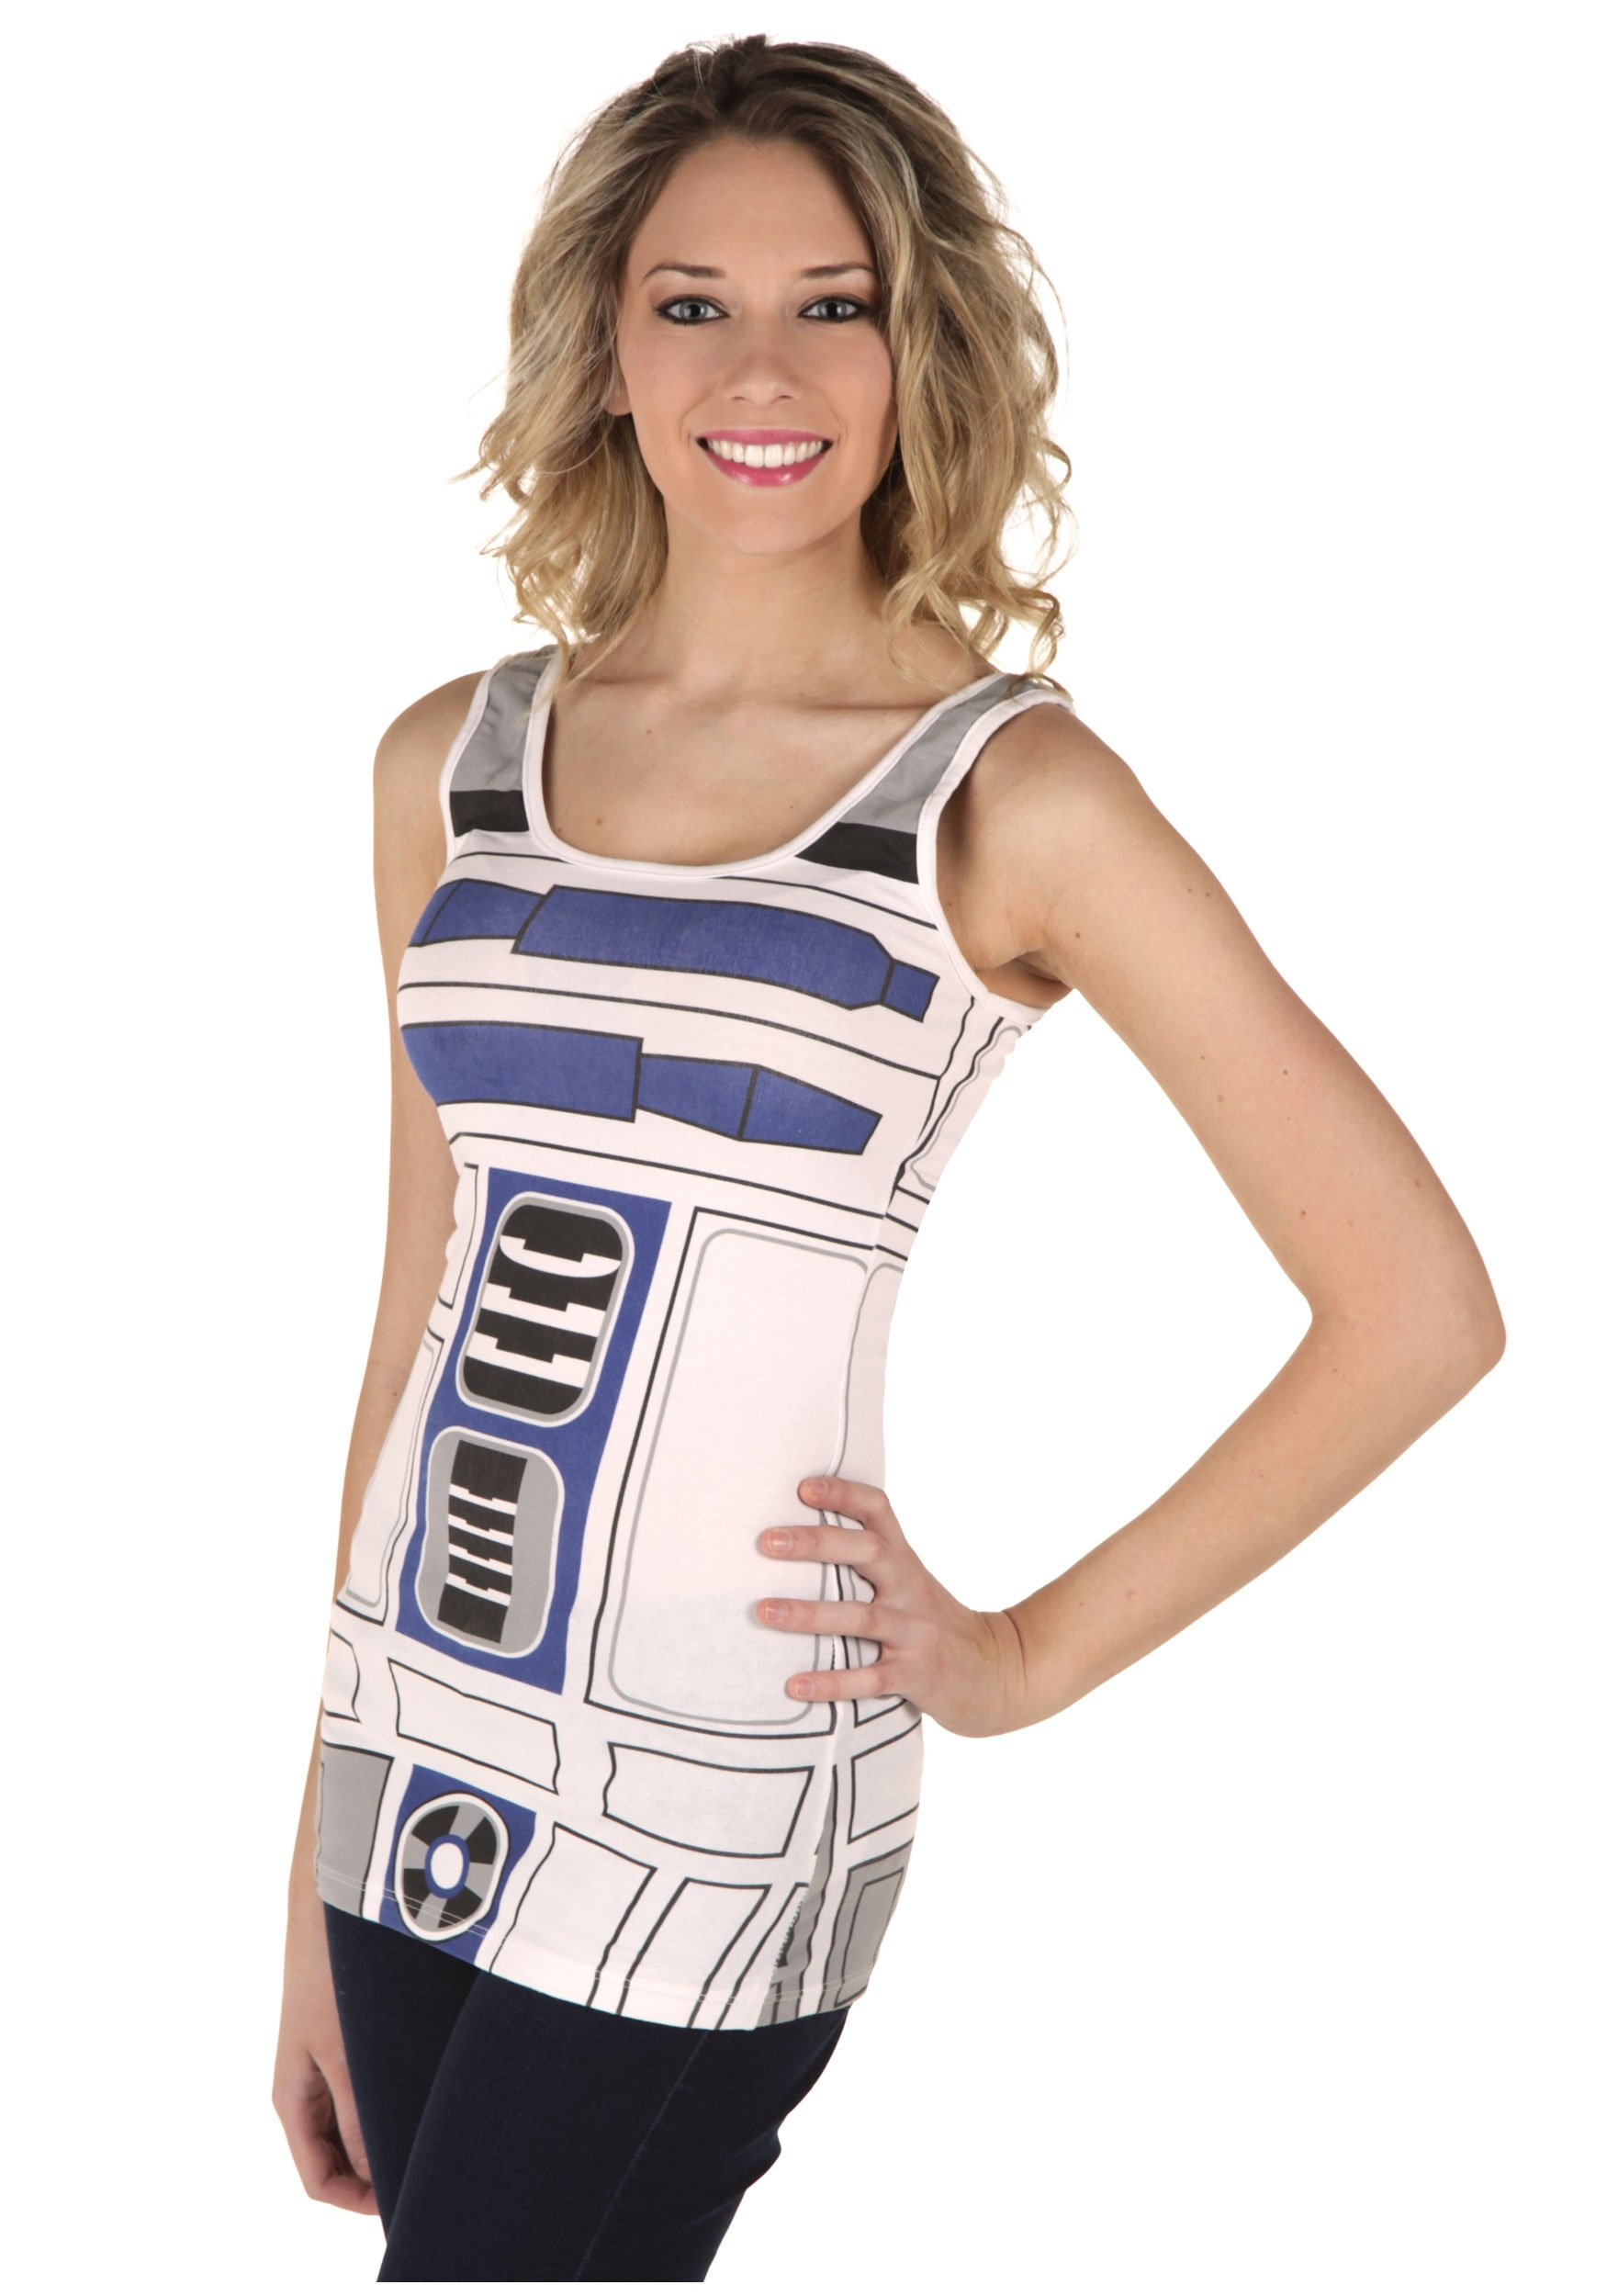 Mighty Fine I Am R2D2 Juniors (Large)